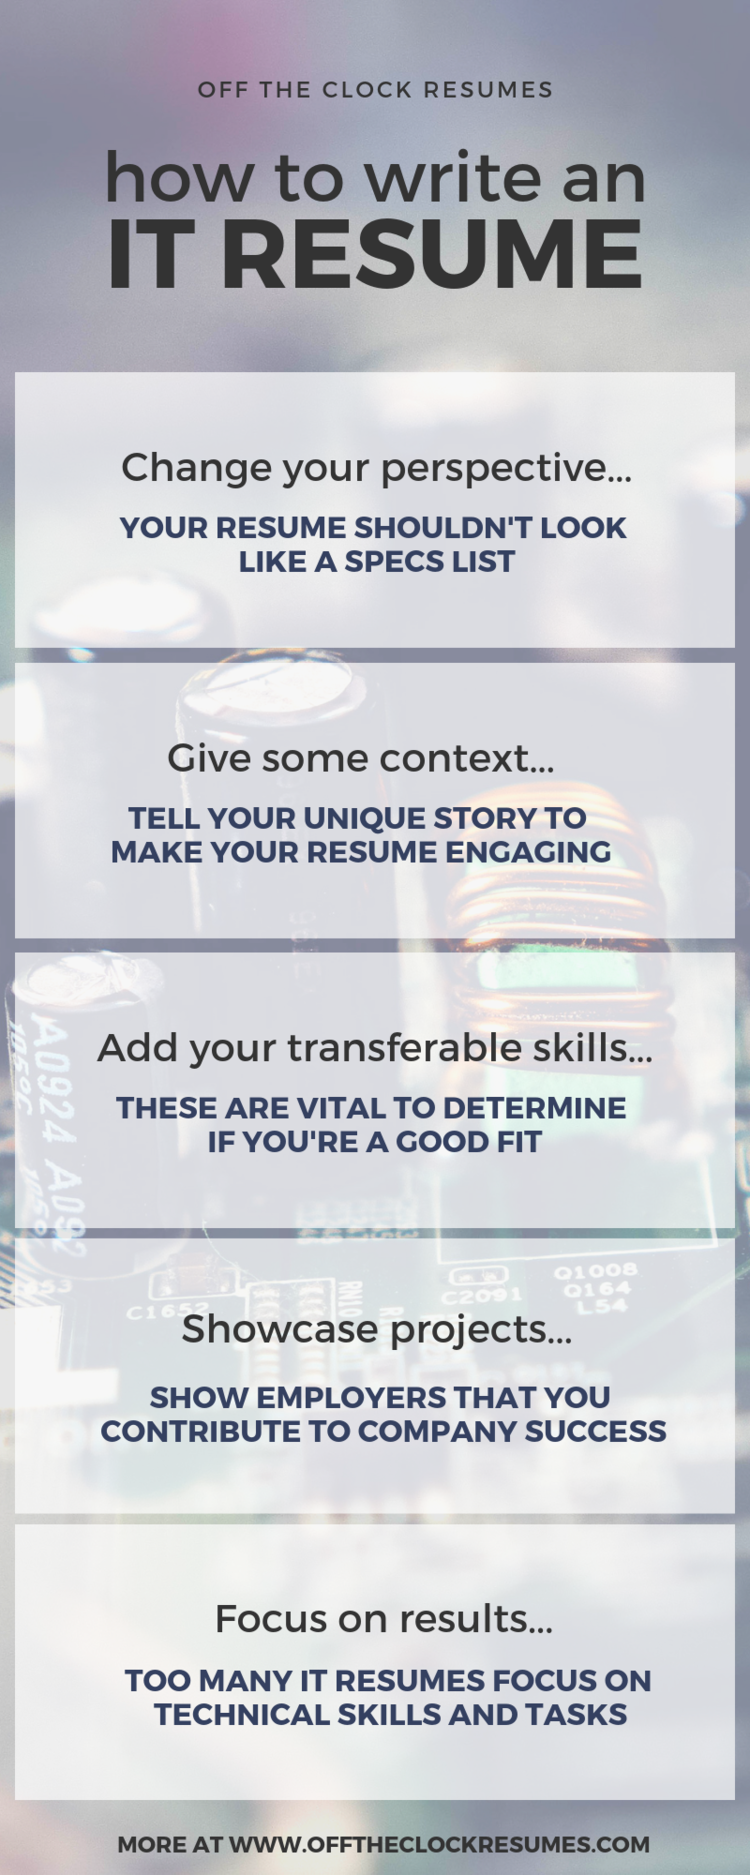 How To Write An IT Resume That Won't Bore Employers - Resume, Resume examples, Words to use, Technology job, Professional resume writers, Resume tips - Stop boring employers, and start capturing their interest with an IT resume that speaks to both technical and nontechnical audiences  This guide covers how to write an IT resume that employers will want to read!